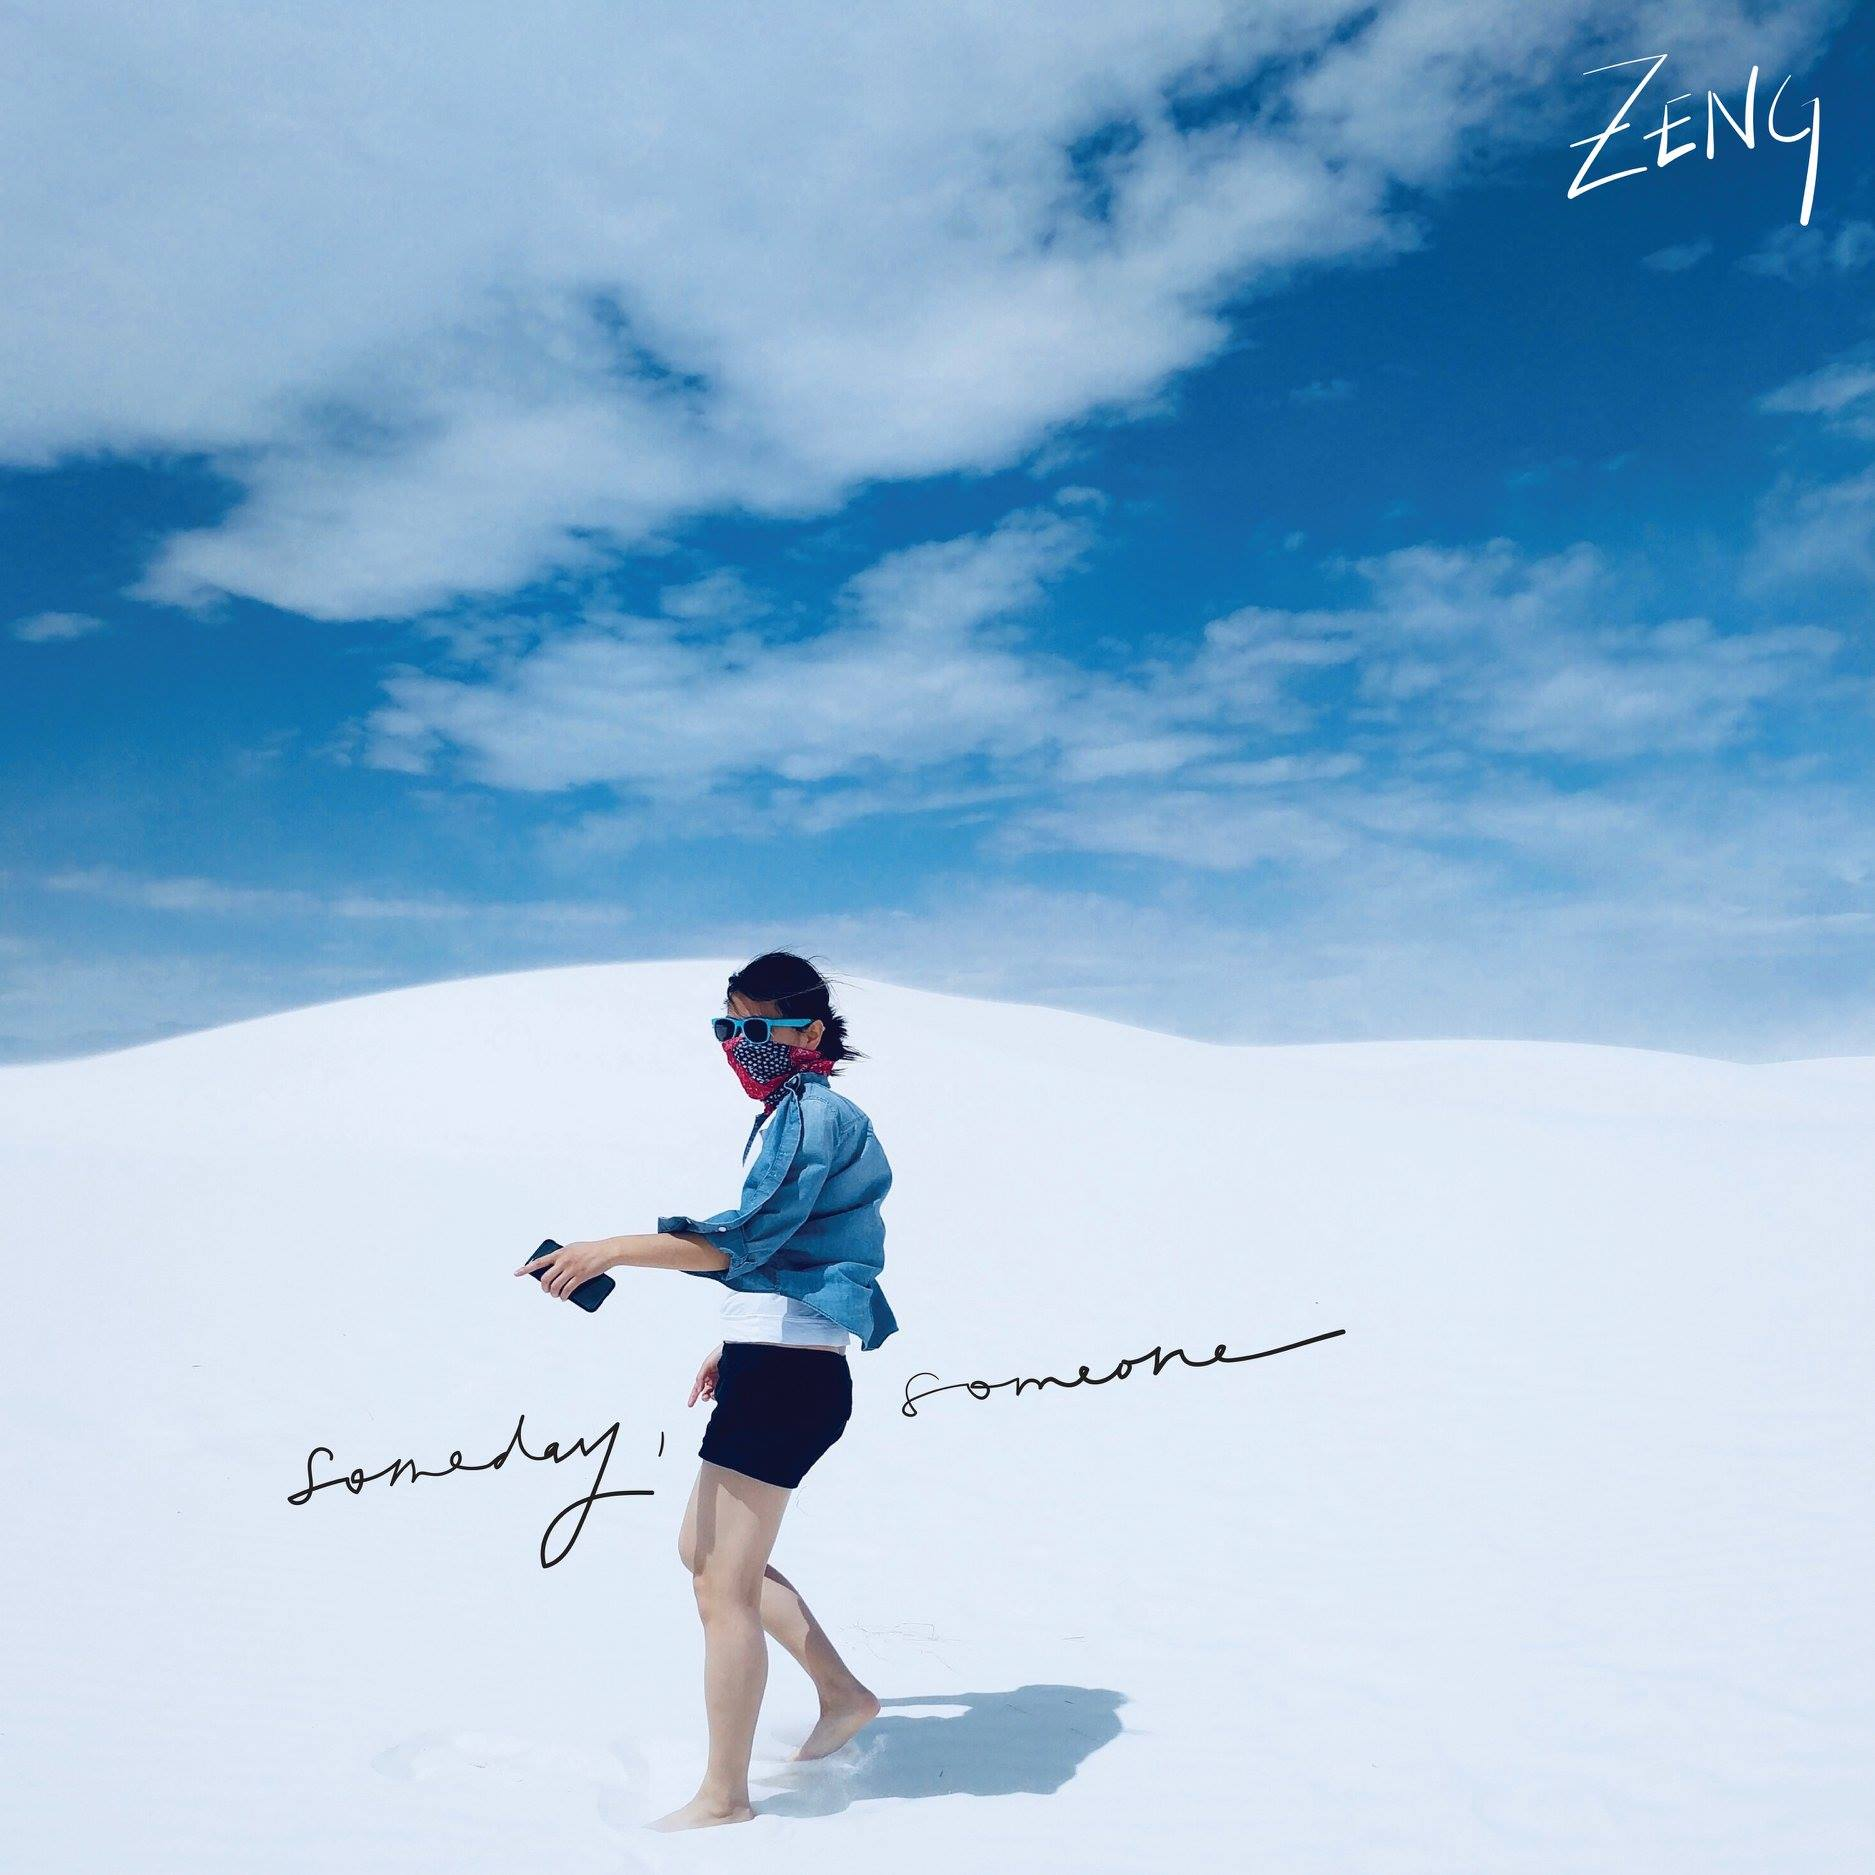 Zeng: Someday, Someone (SINGLE)   Credits: Engineer, Production, Mix, Electric Guitar, Bass, Acoustic Guitar, Piano, Synth, Drum Programming